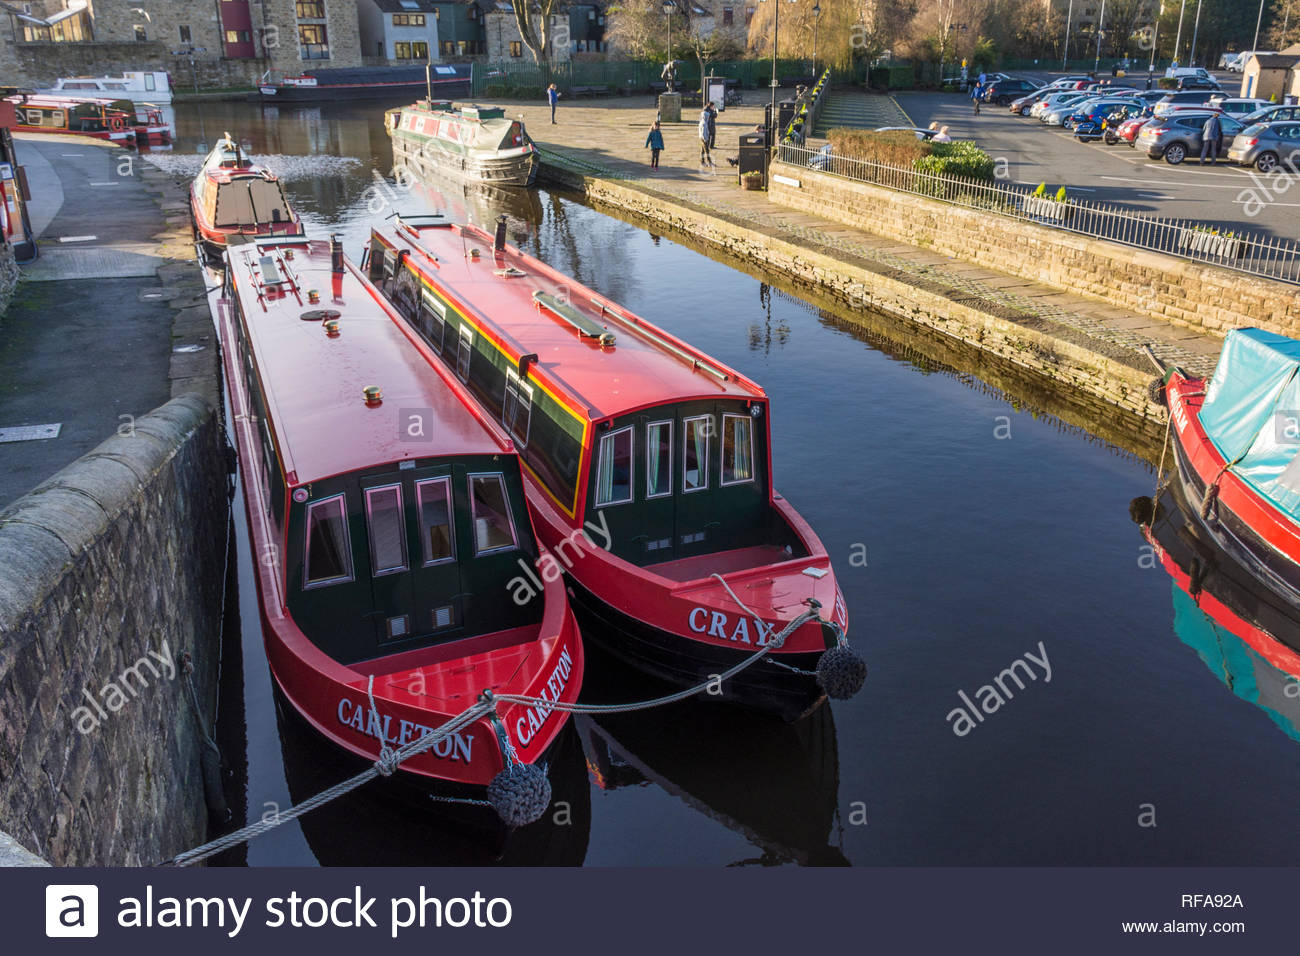 Narrowboats for hire on the Leeds and Liverpool Canal at Skipton, North Yorkshire, England, UK - Stock Image